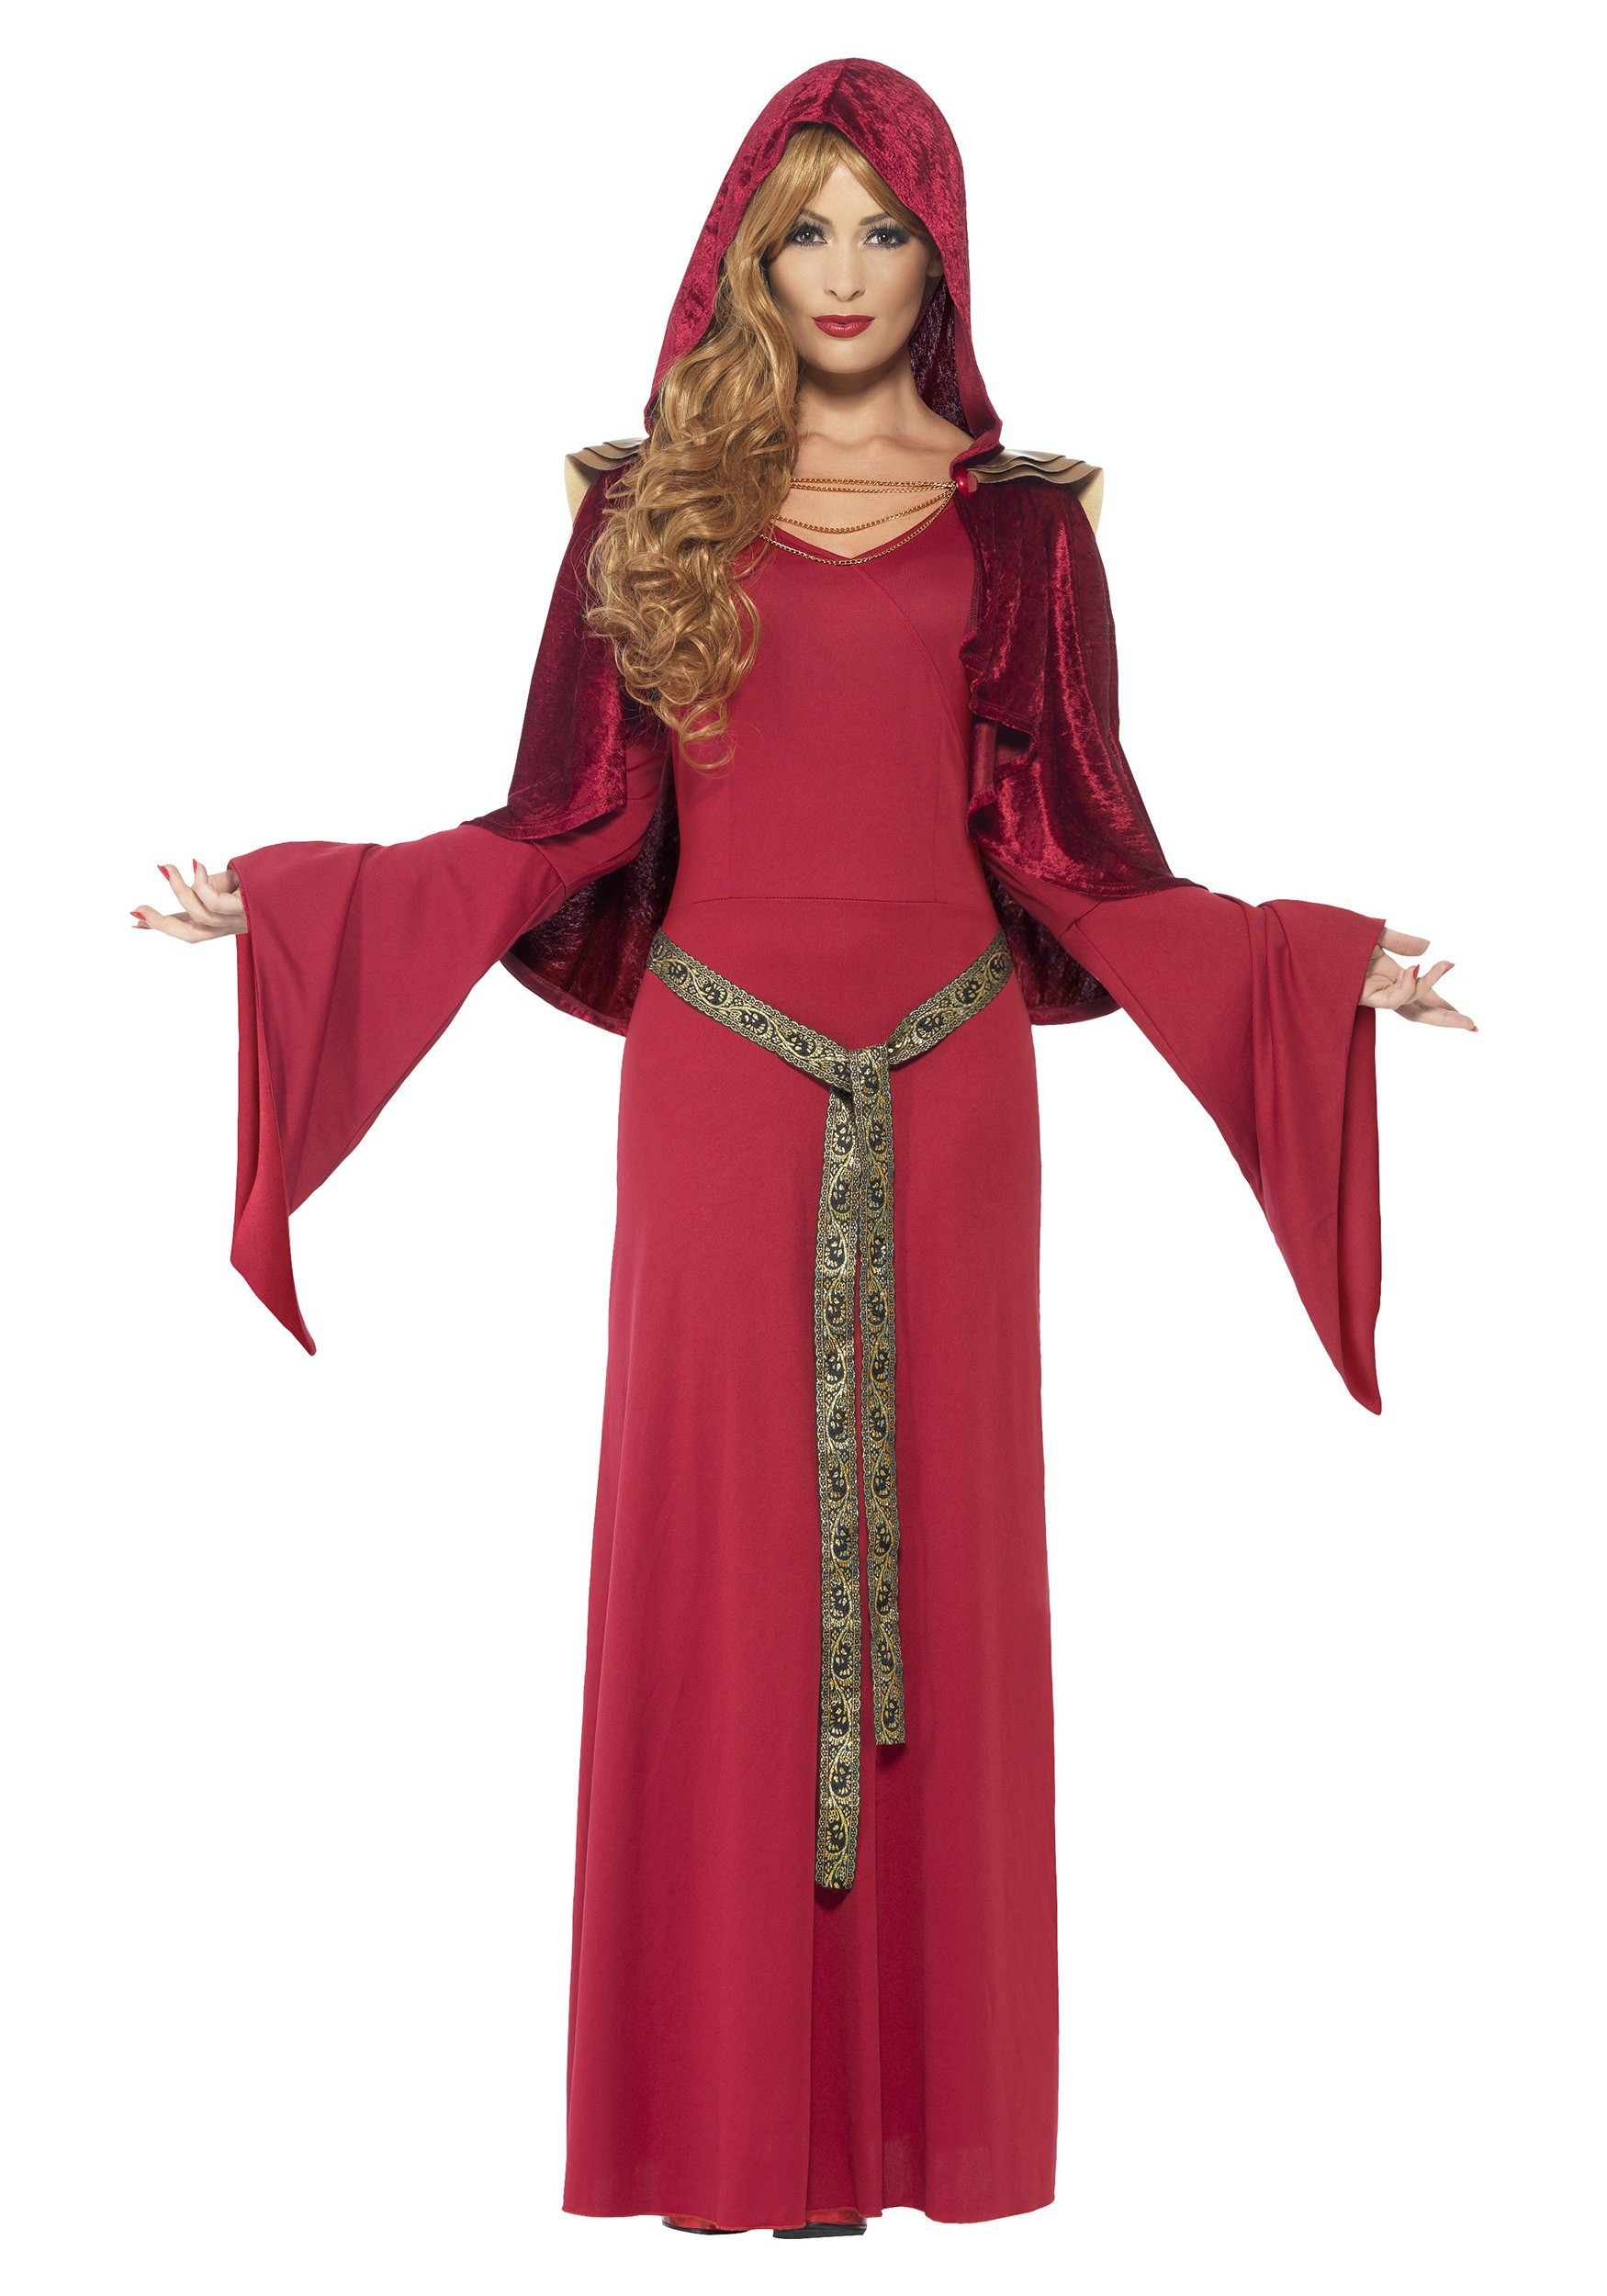 Women 39 s red high priestess costume - Disfraces sencillos para carnaval ...